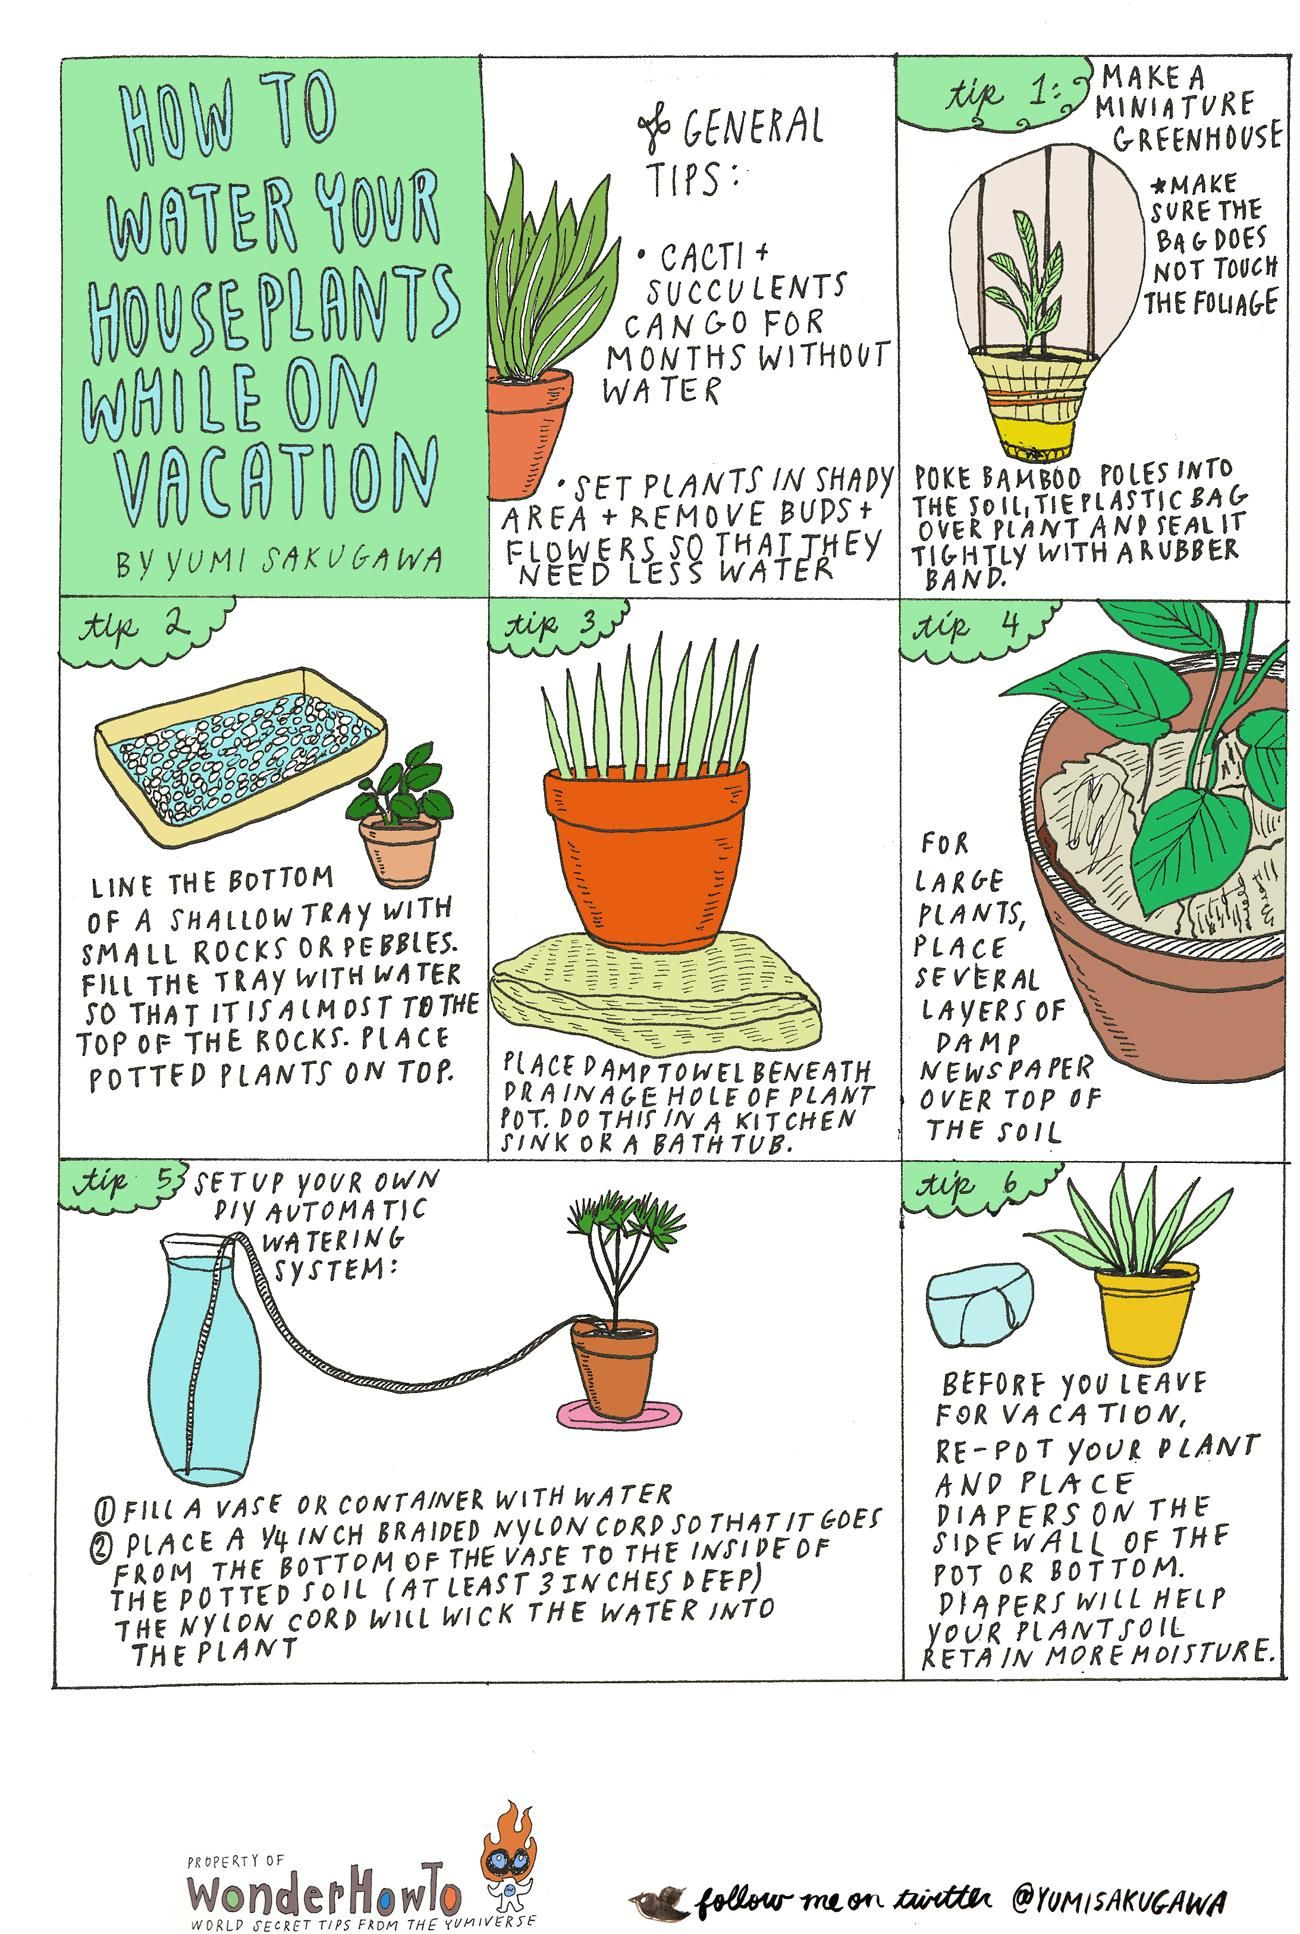 6 Diy Tips For Watering Your Houseplants While Away On Vacation Plants Water Plants Houseplants